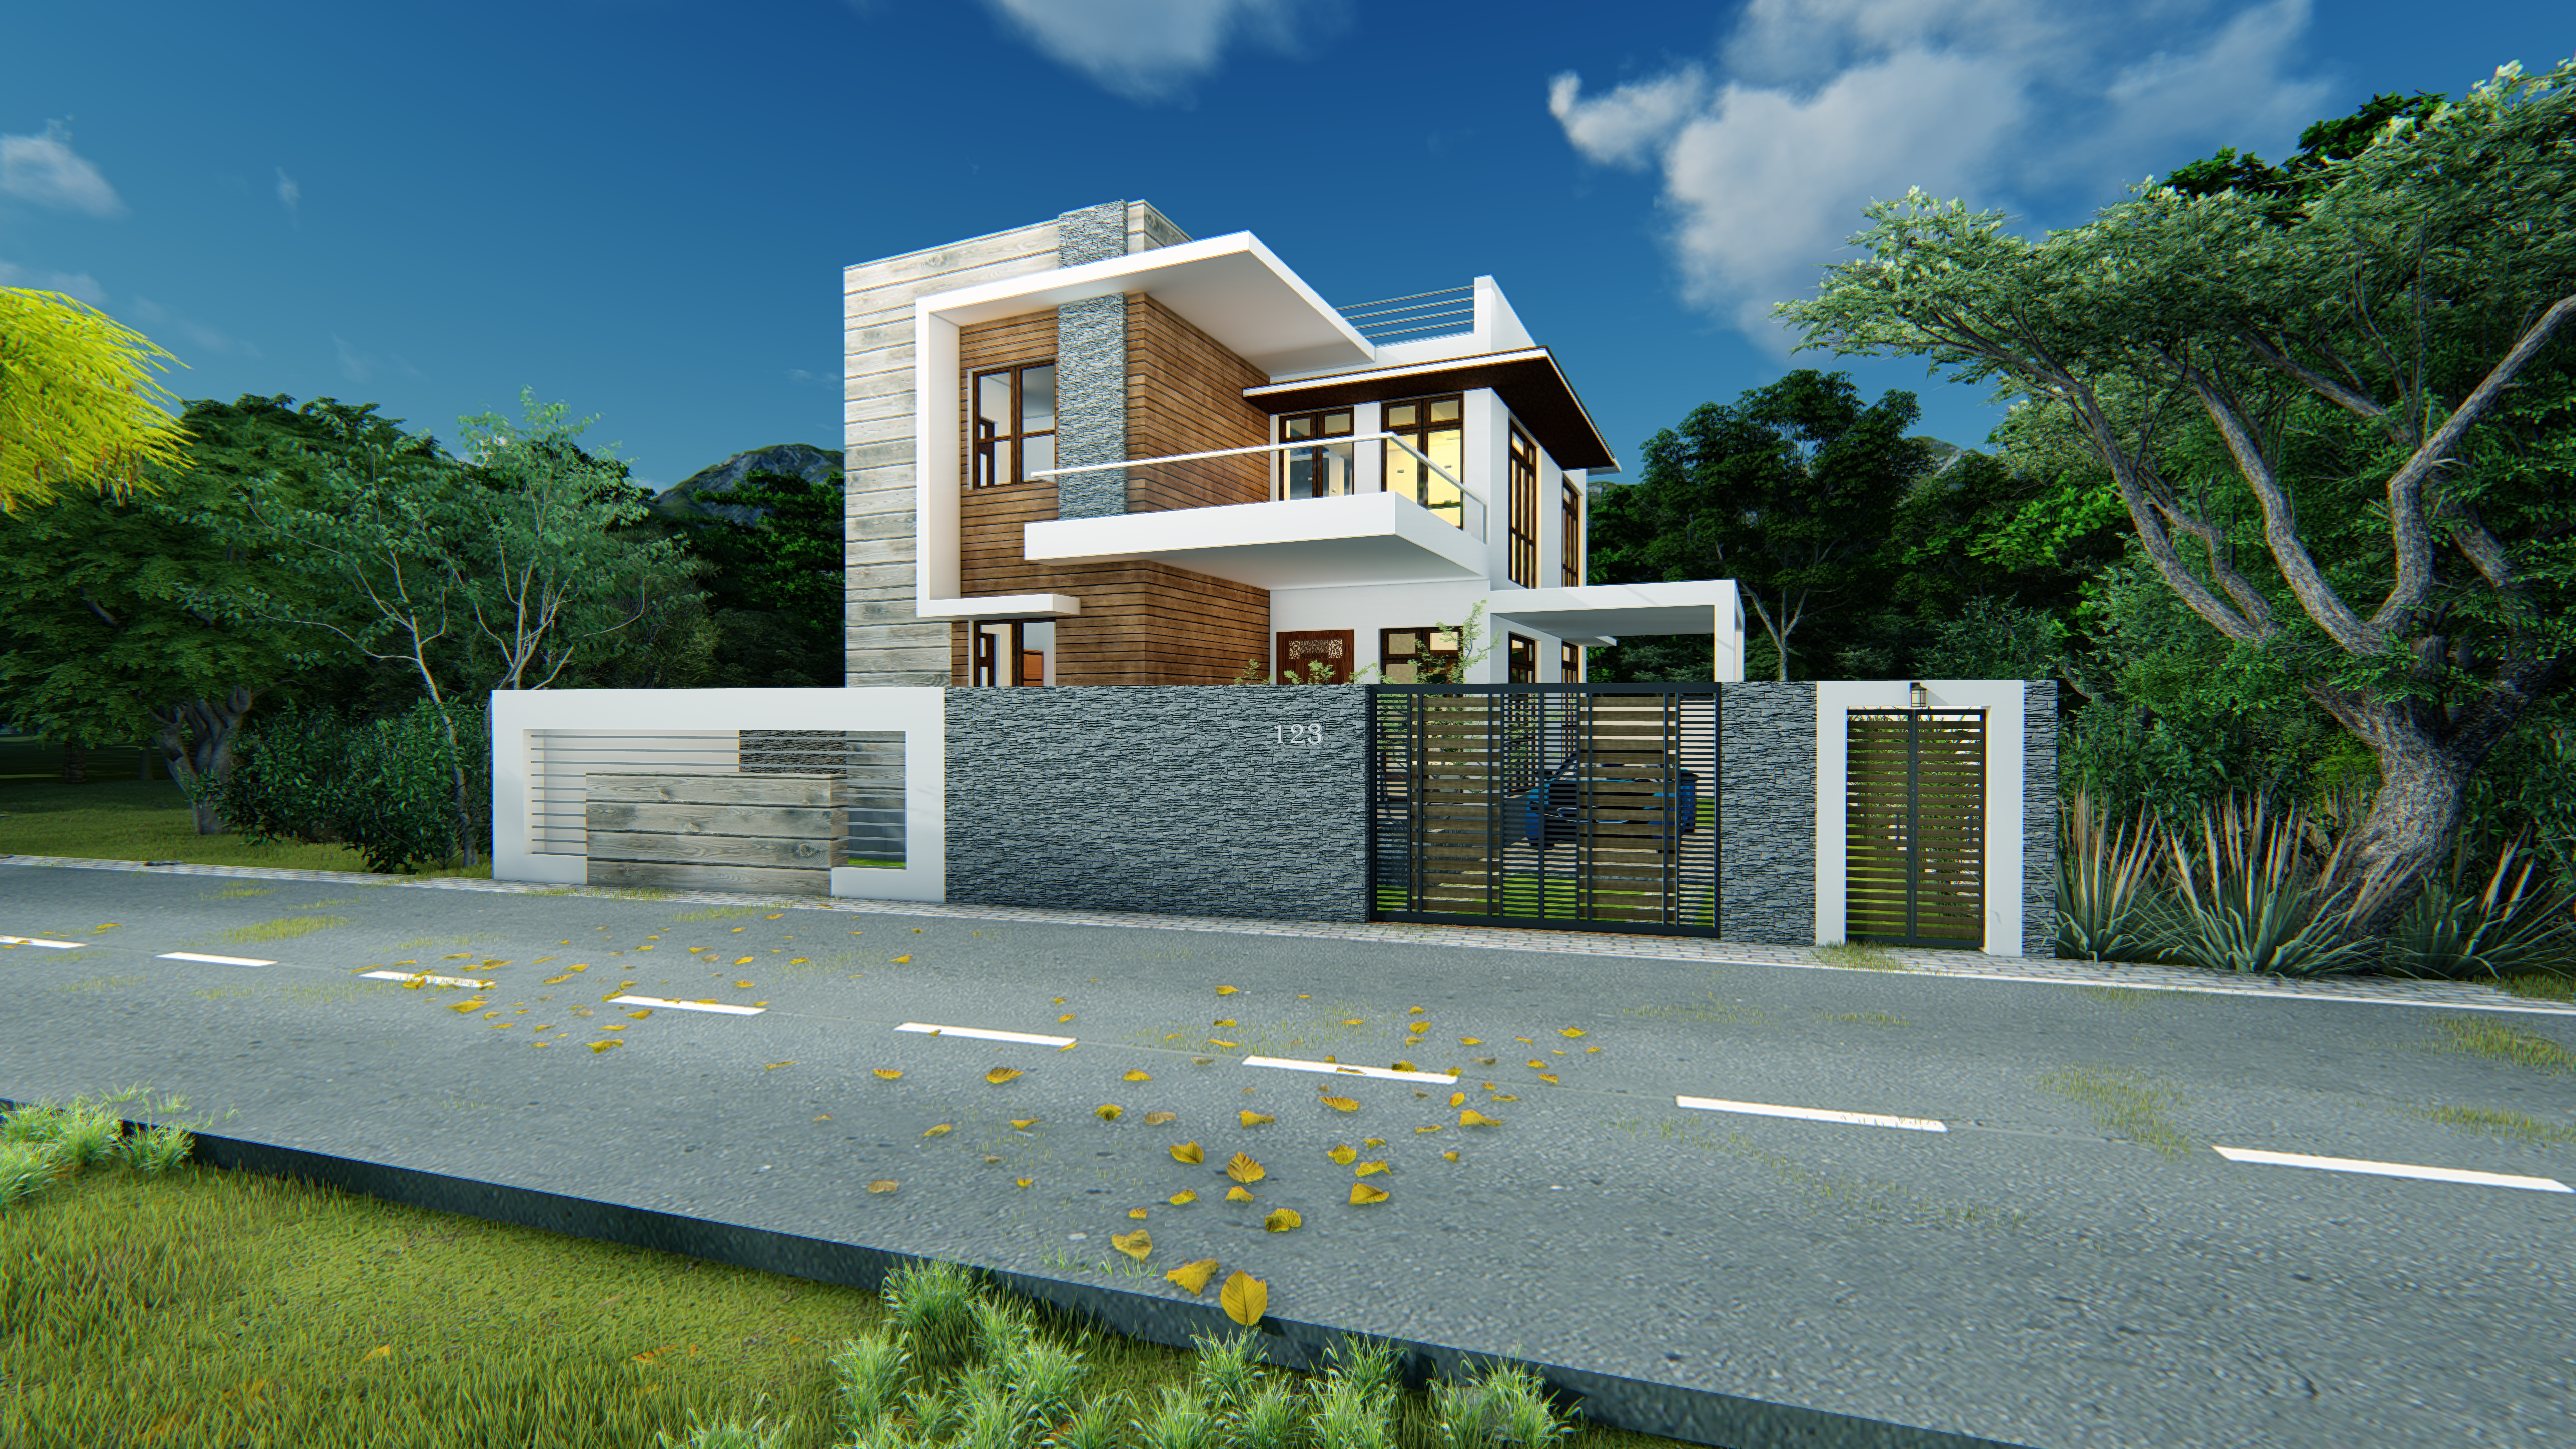 I will 3d design your house or building